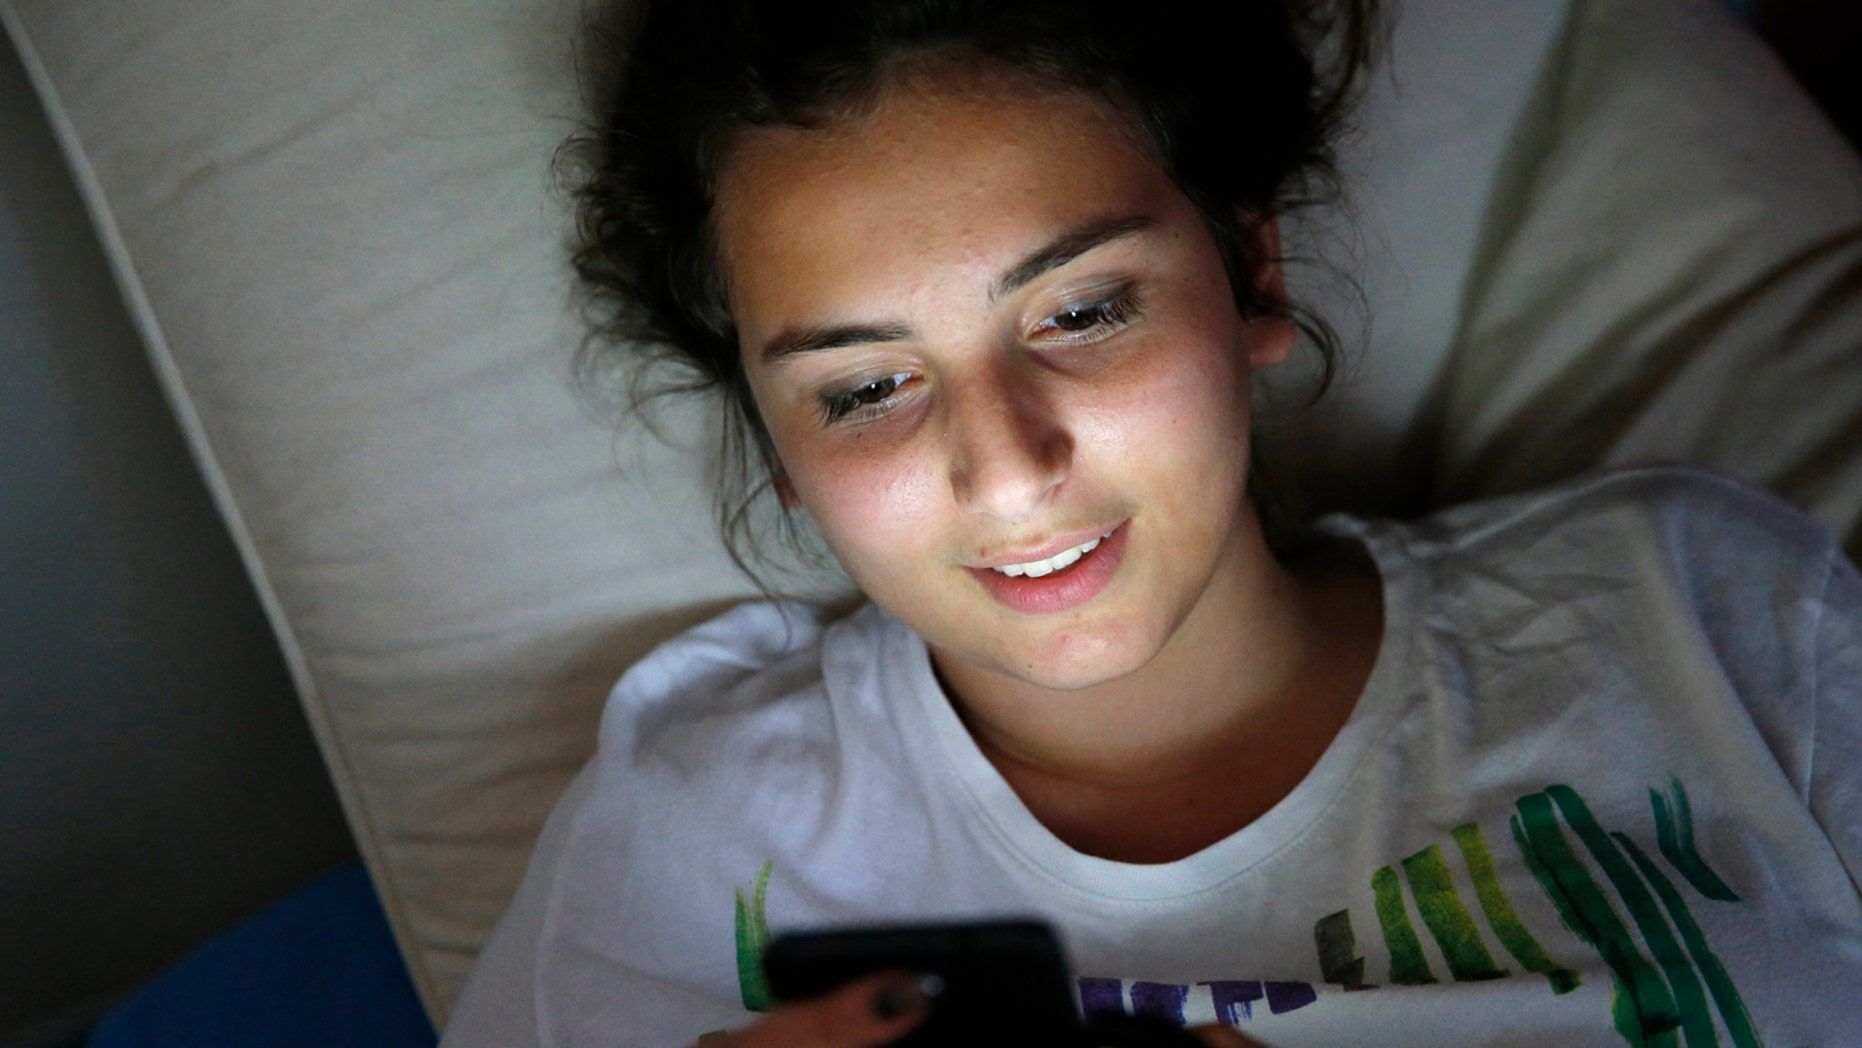 Teenager using a cell phone on her bed (Photo by: Godong/UIG via Getty Images)